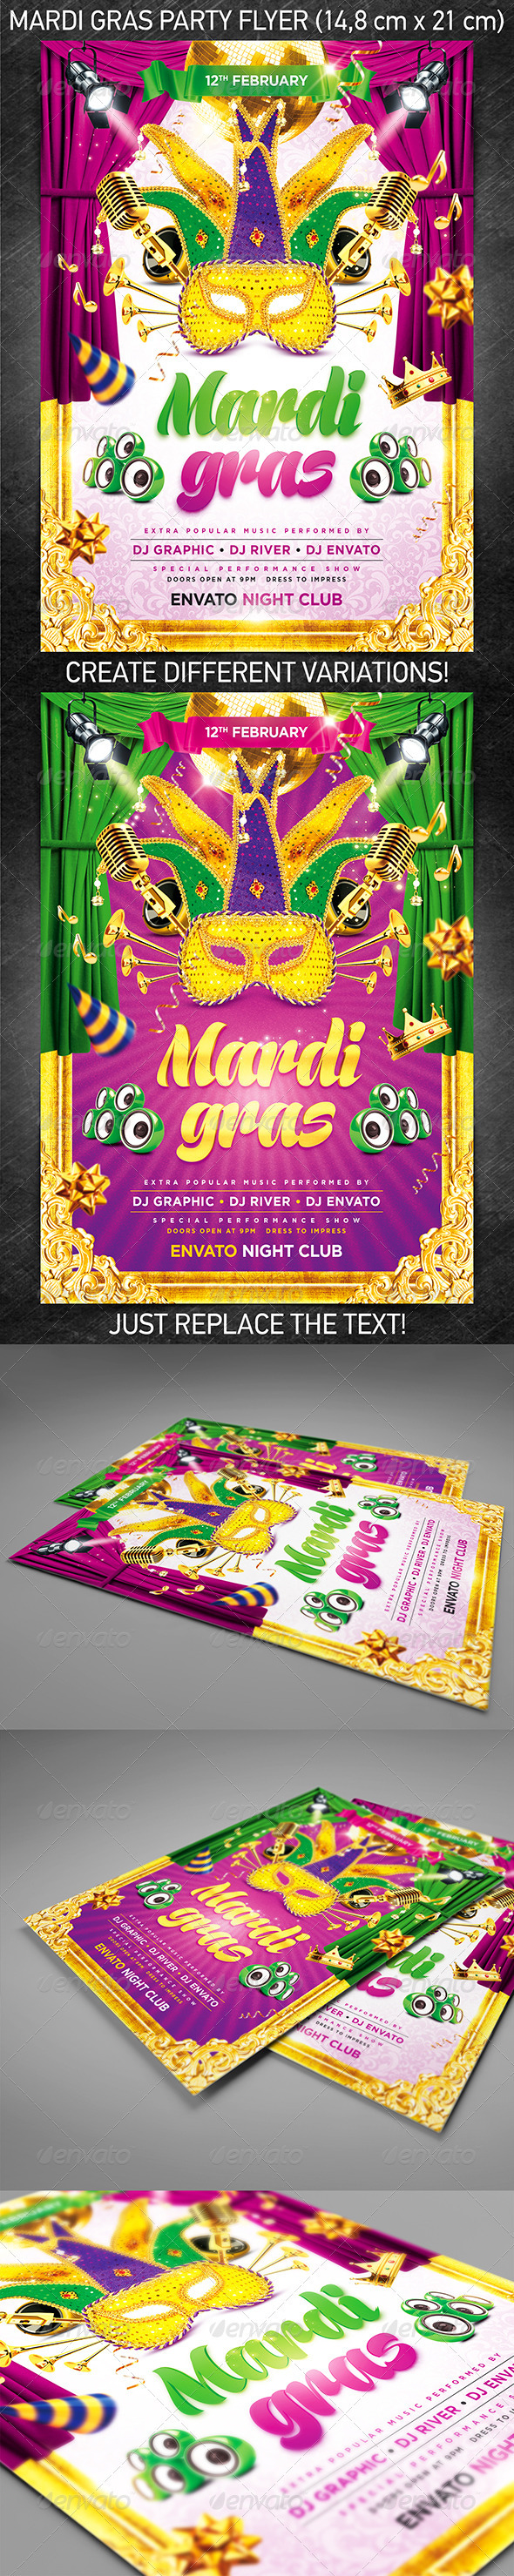 Mardi Gras Party Flyer VOL.1 - Holidays Events